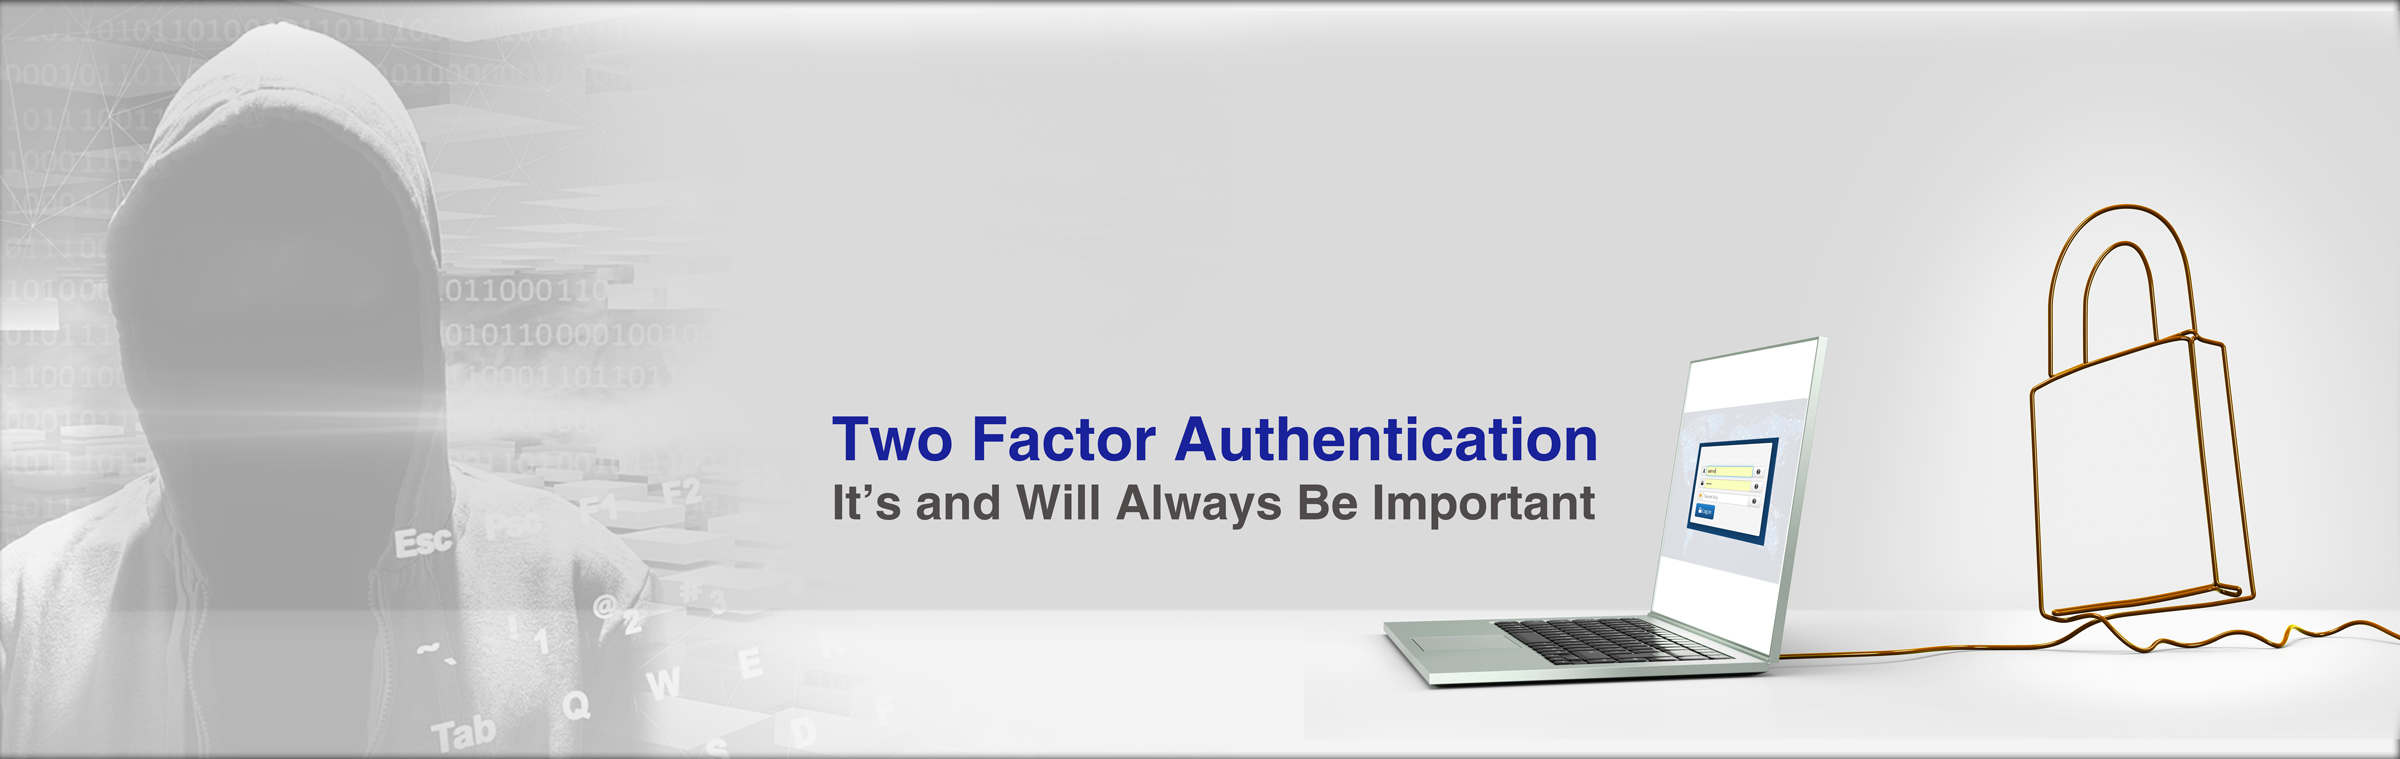 Two Factor Authentication: It's and Will Always Be Important